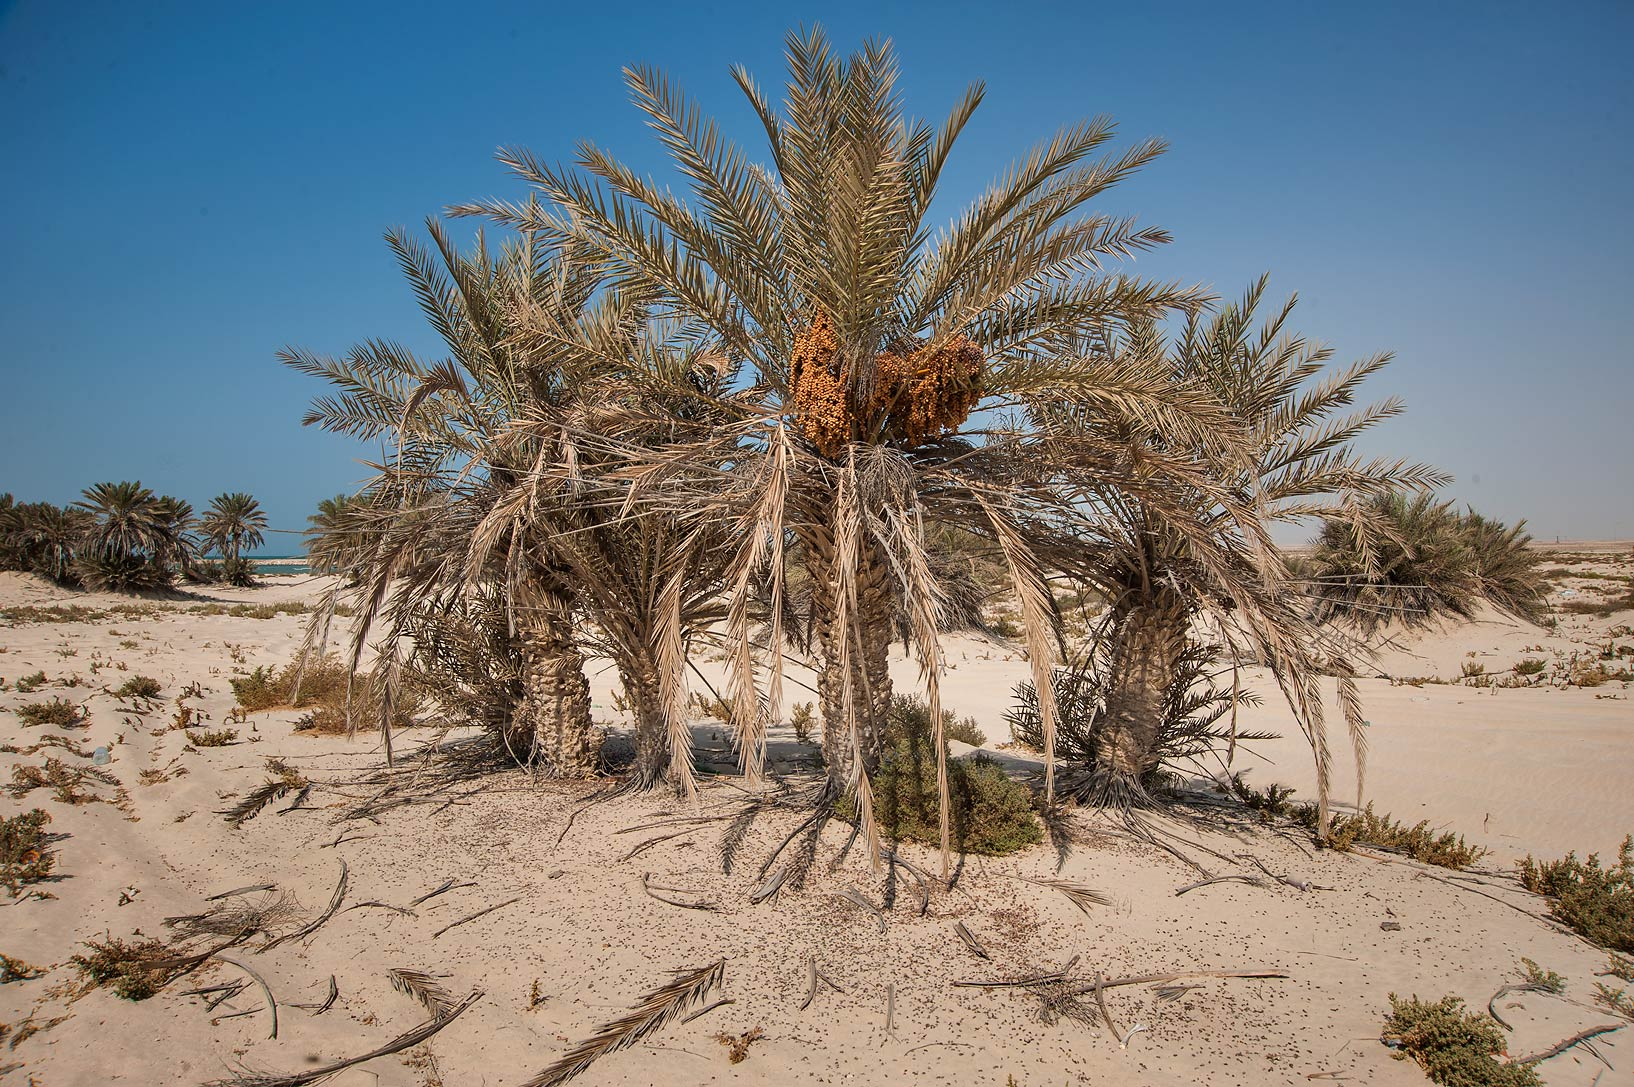 Date palms (Phoenix dactylifera, local name...Well near Umm Bab. South-western Qatar